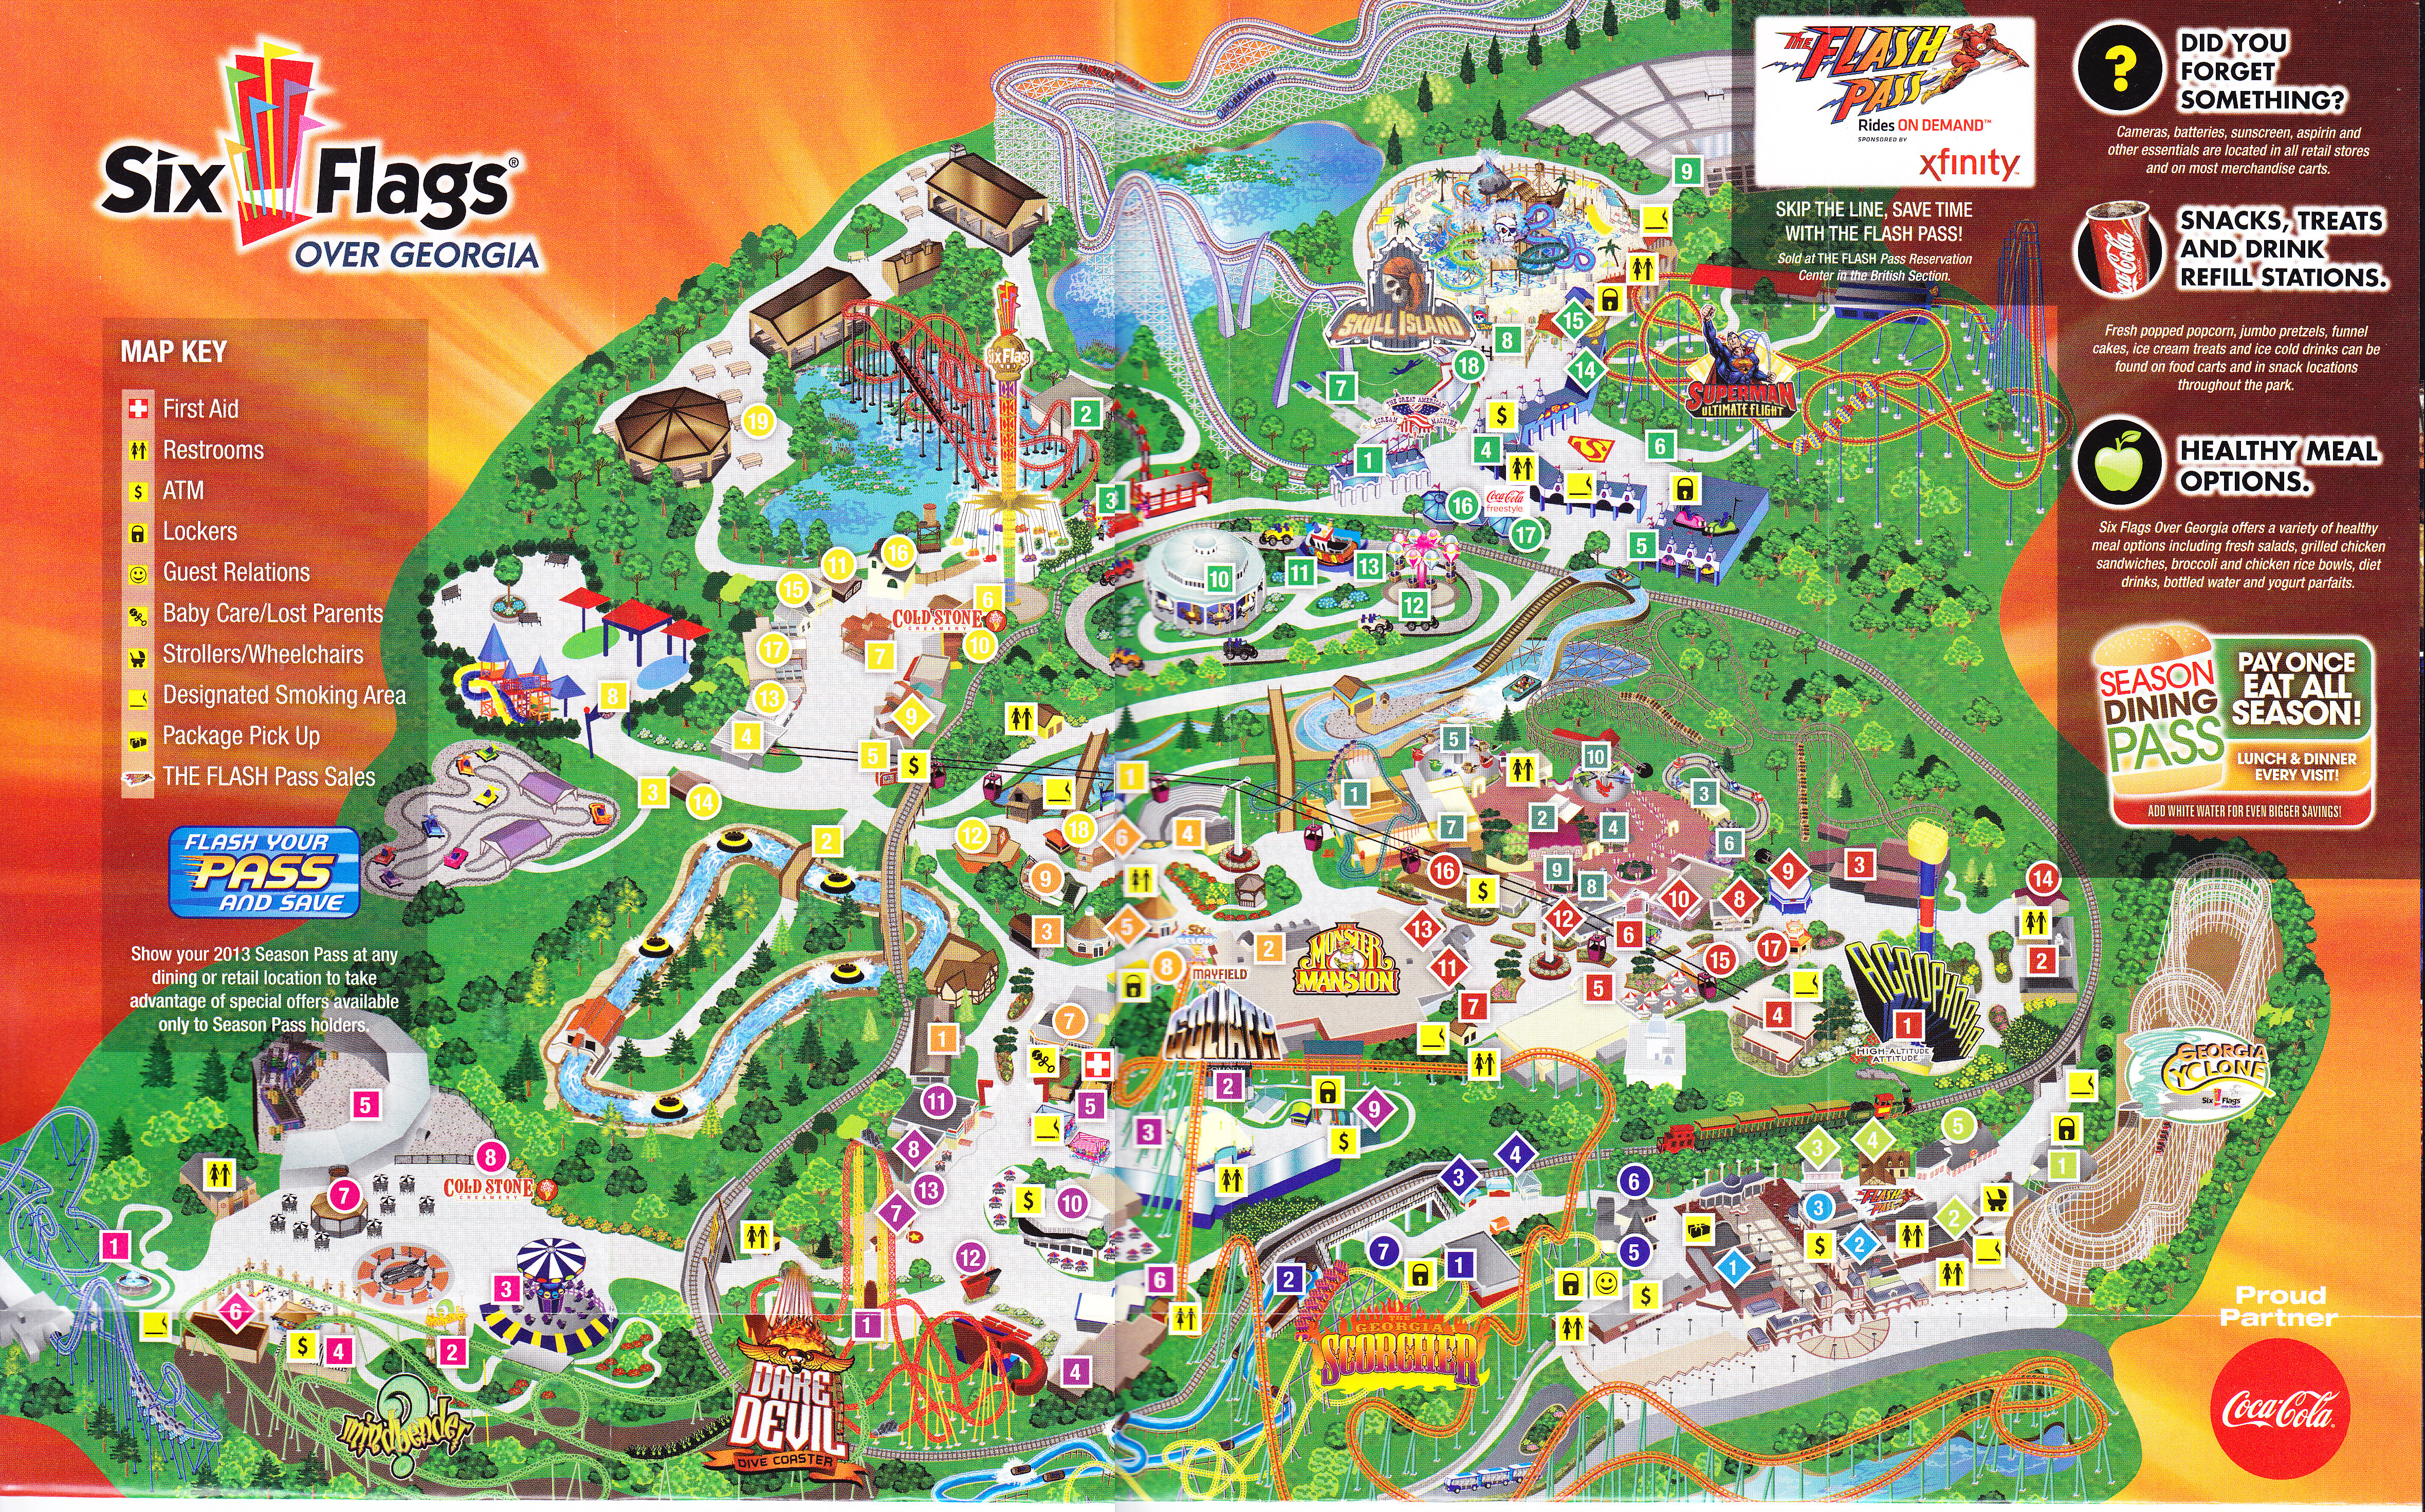 Six Flags Map Six Flags Over Georgia Map ~ CINEMERGENTE Six Flags Map